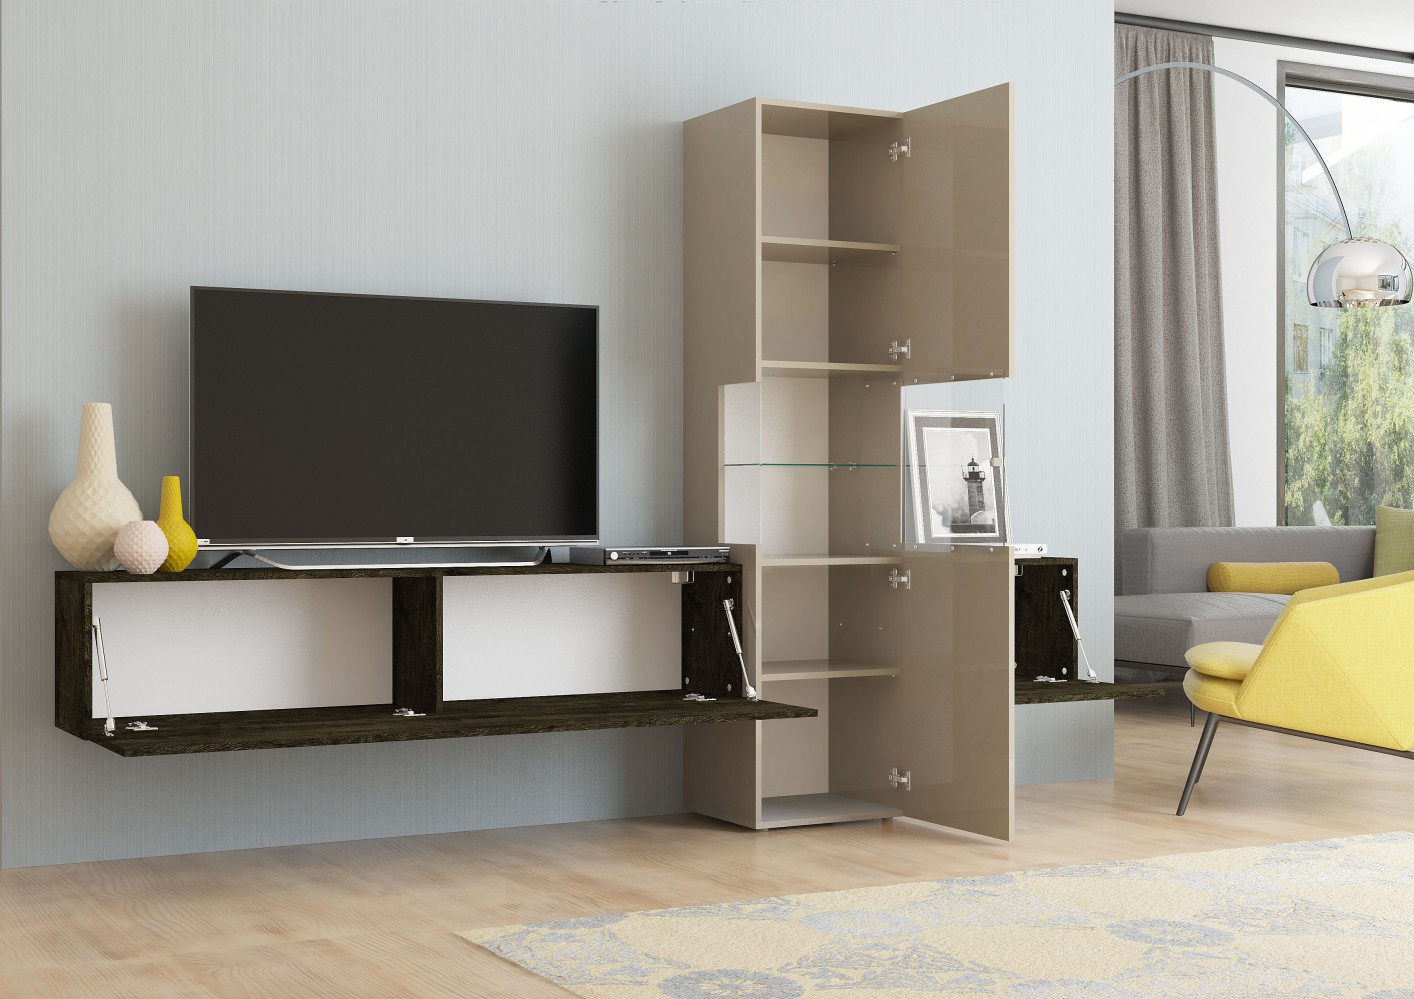 tecnos wohnwand incontro 3 tlg sandfarben eiche dunkel. Black Bedroom Furniture Sets. Home Design Ideas